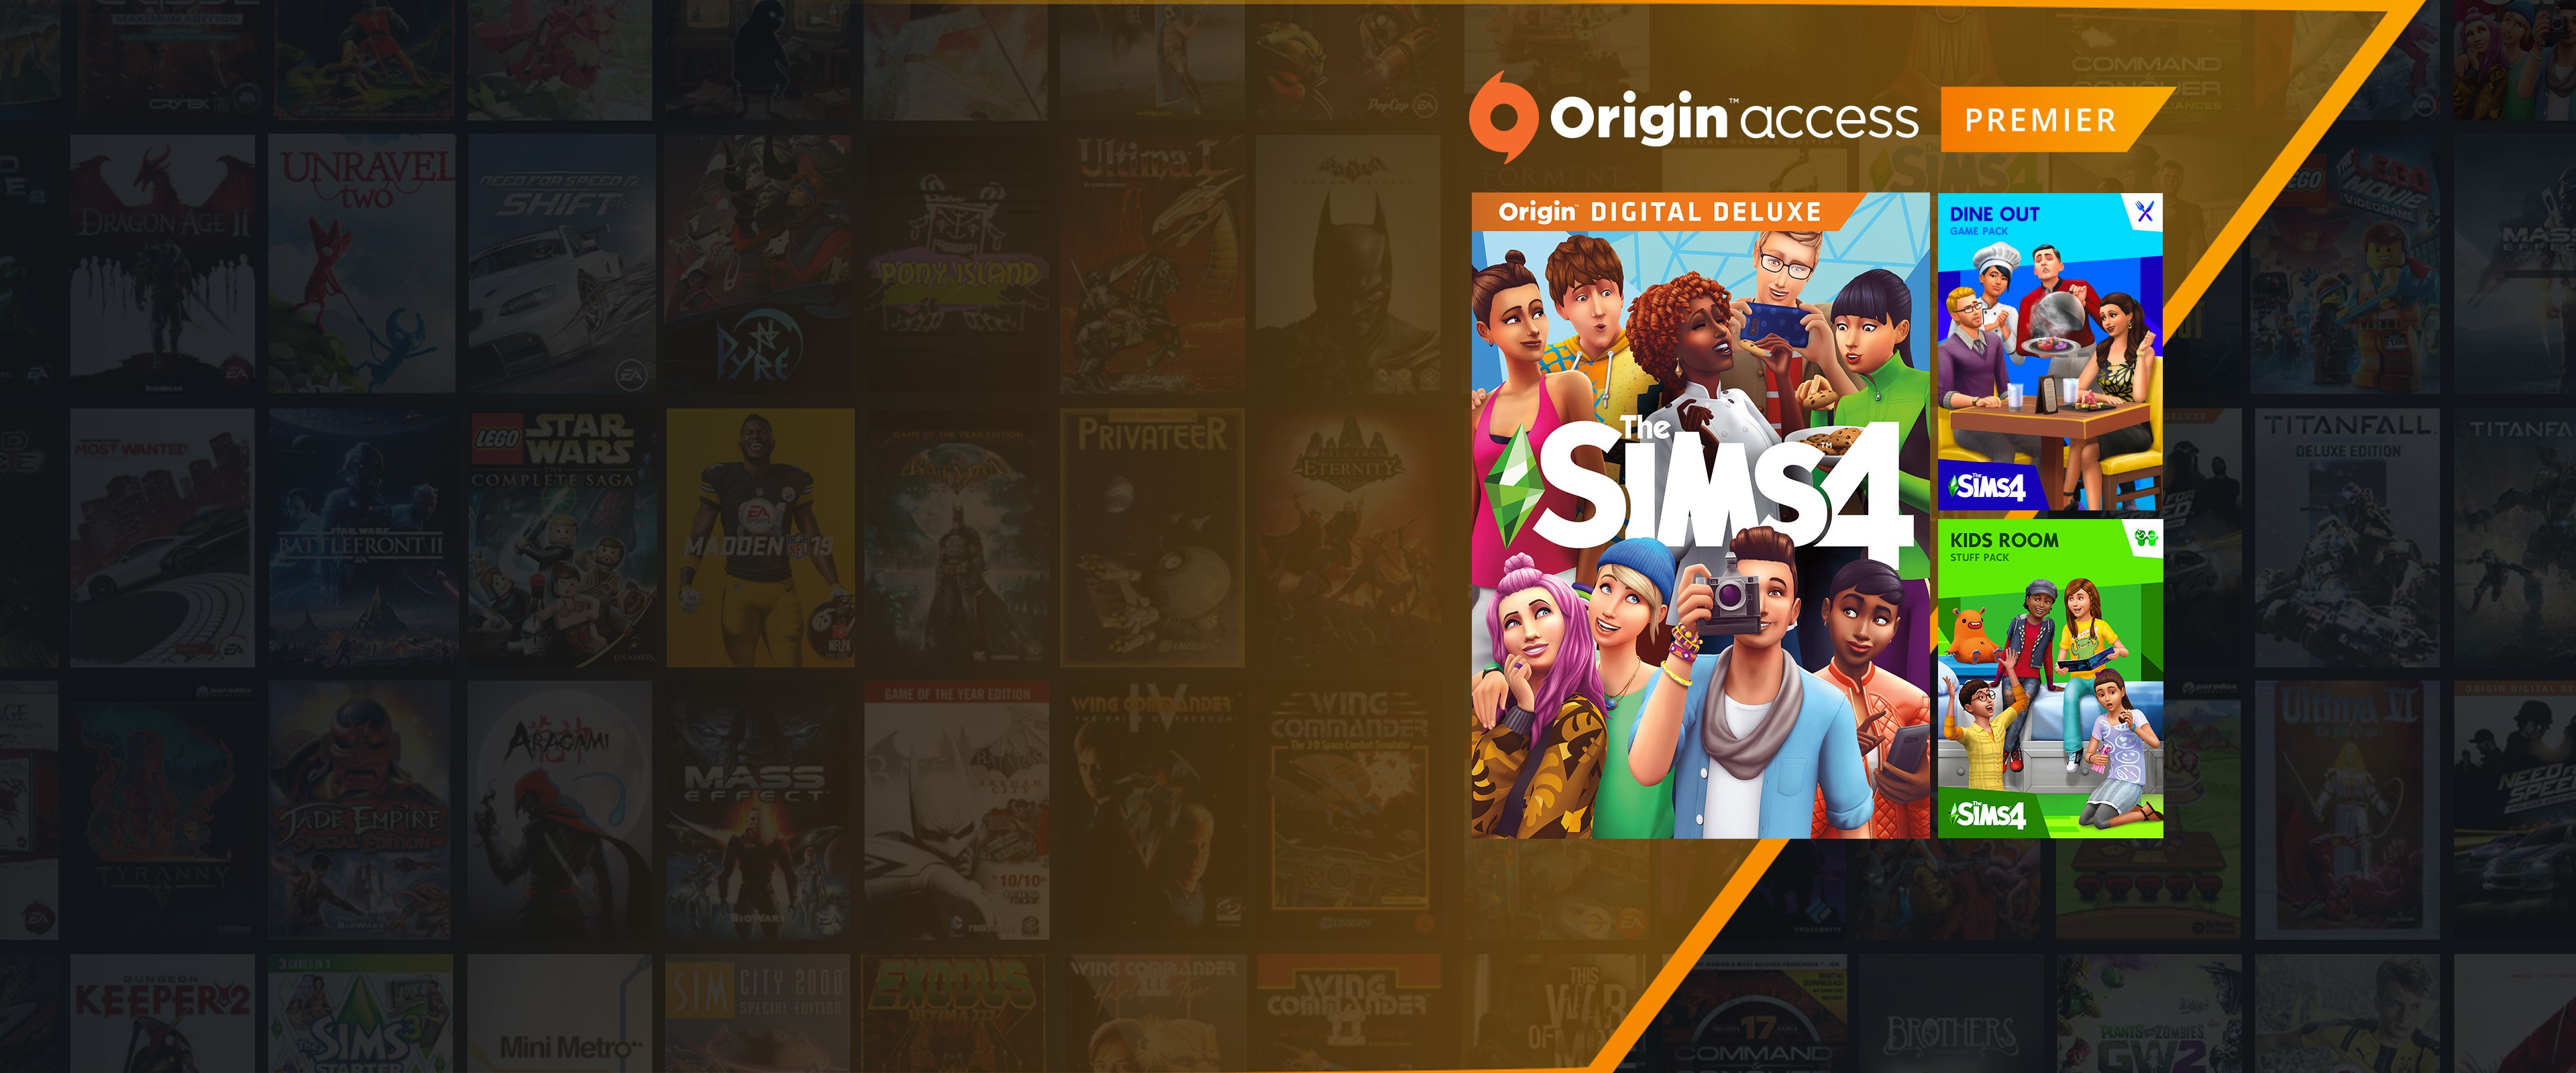 download origin-ea key generator- all games